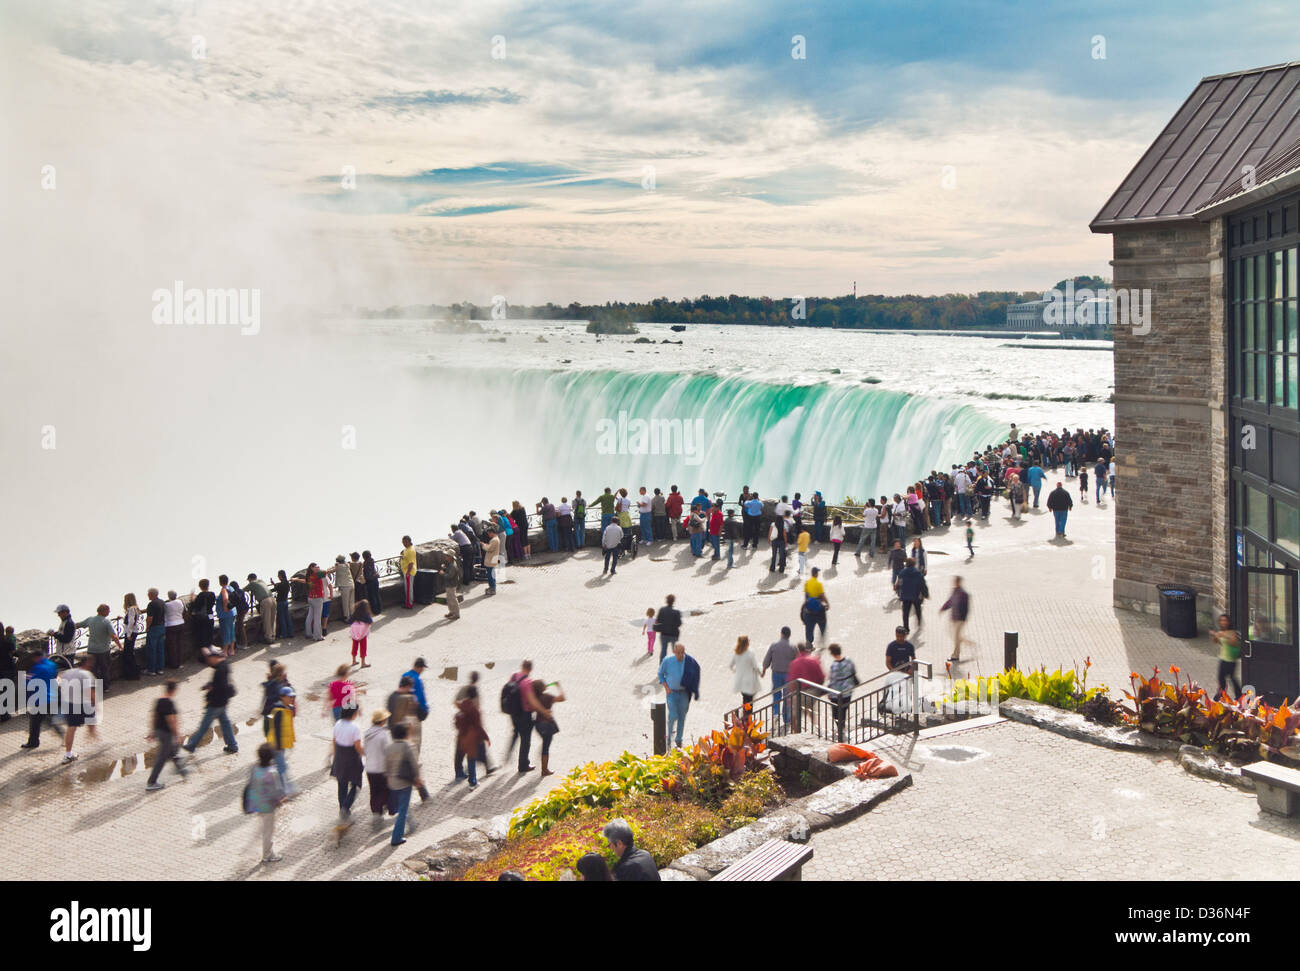 Tourists at the top of the Horseshoe falls Niagara falls and river Ontario Canada - Stock Image